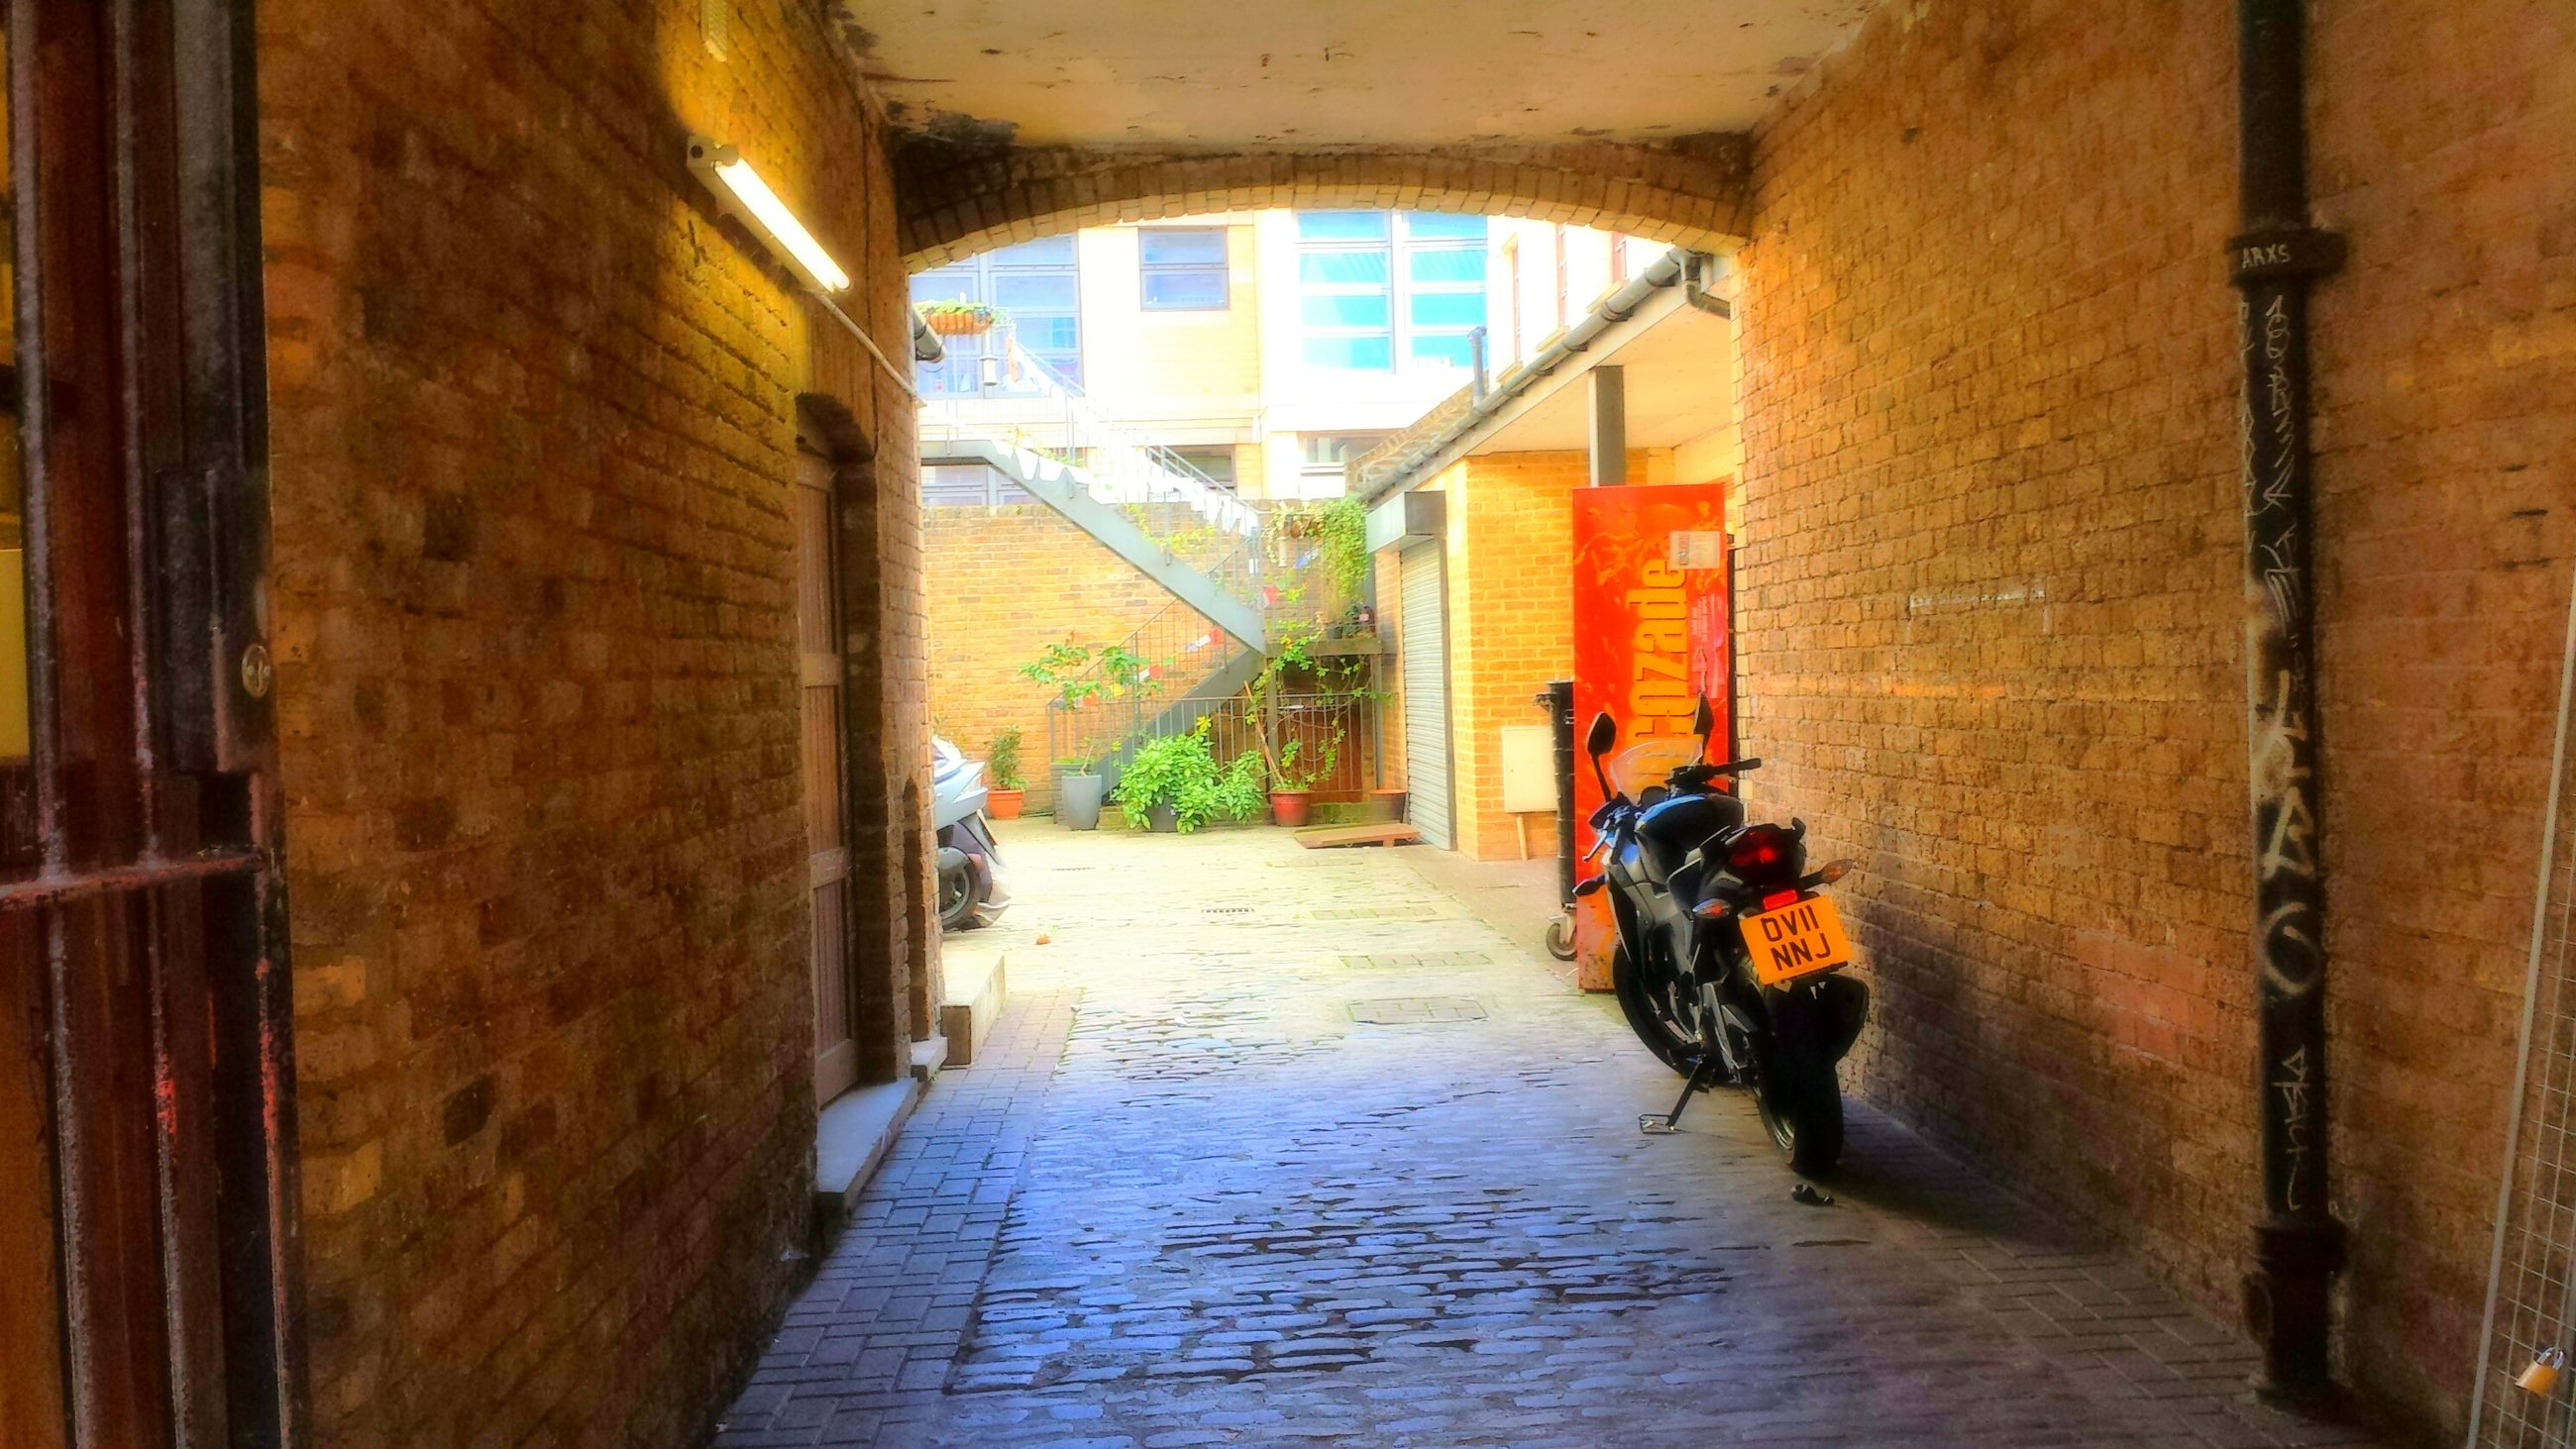 architecture, the way forward, built structure, narrow, building exterior, corridor, indoors, diminishing perspective, arch, alley, building, door, walkway, house, vanishing point, residential structure, pathway, empty, wall - building feature, long